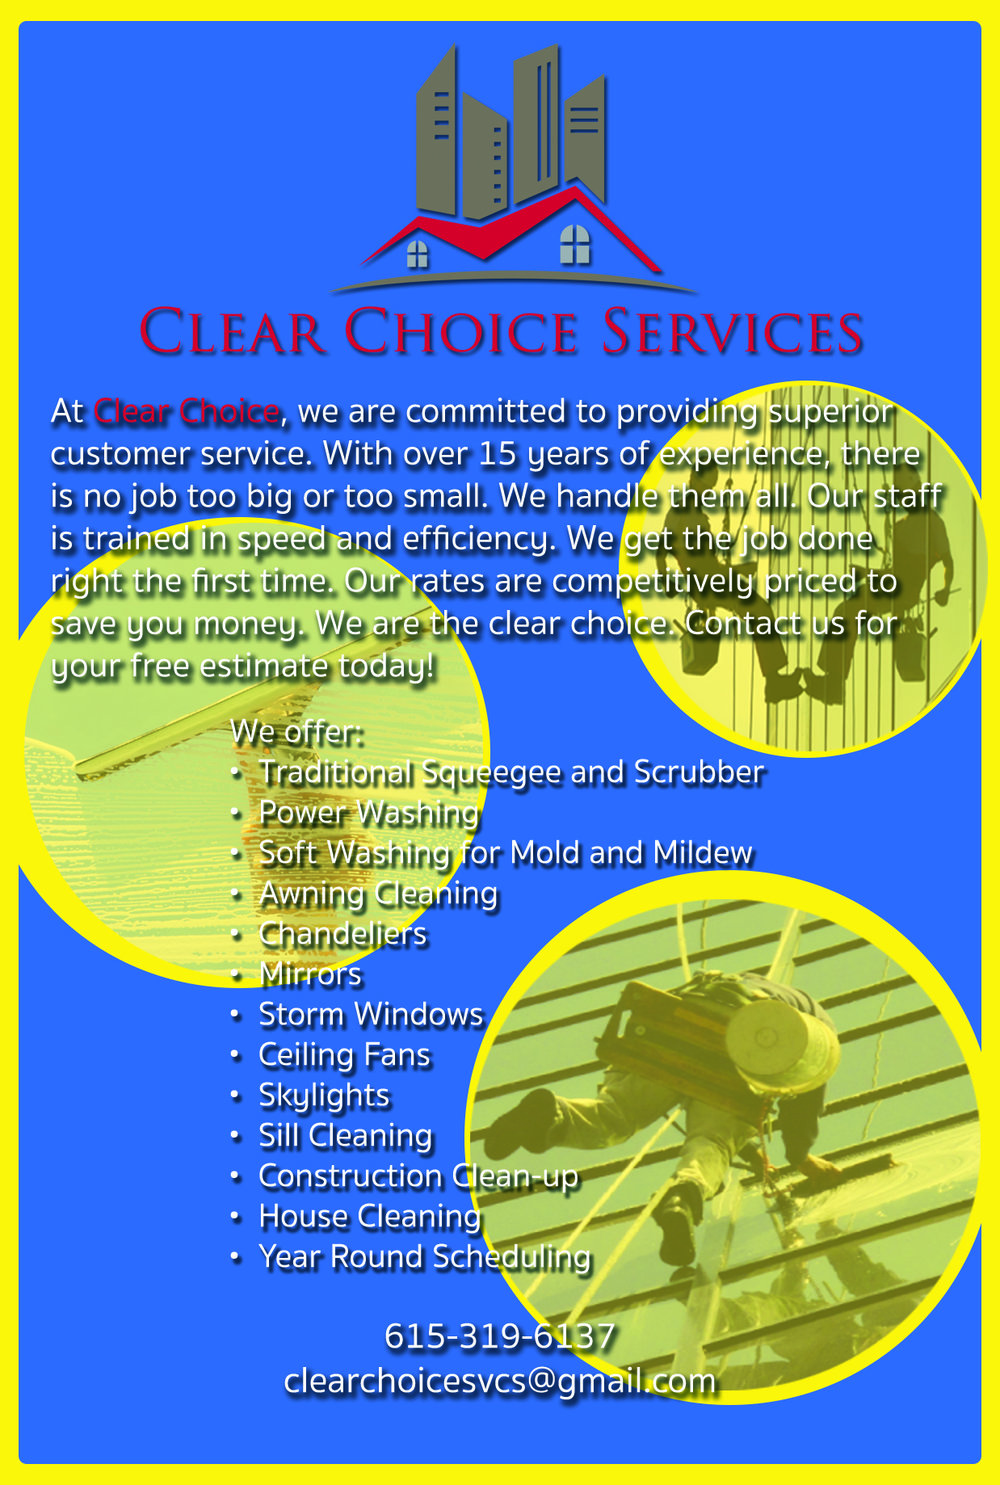 clearchoiceservices-front.jpg